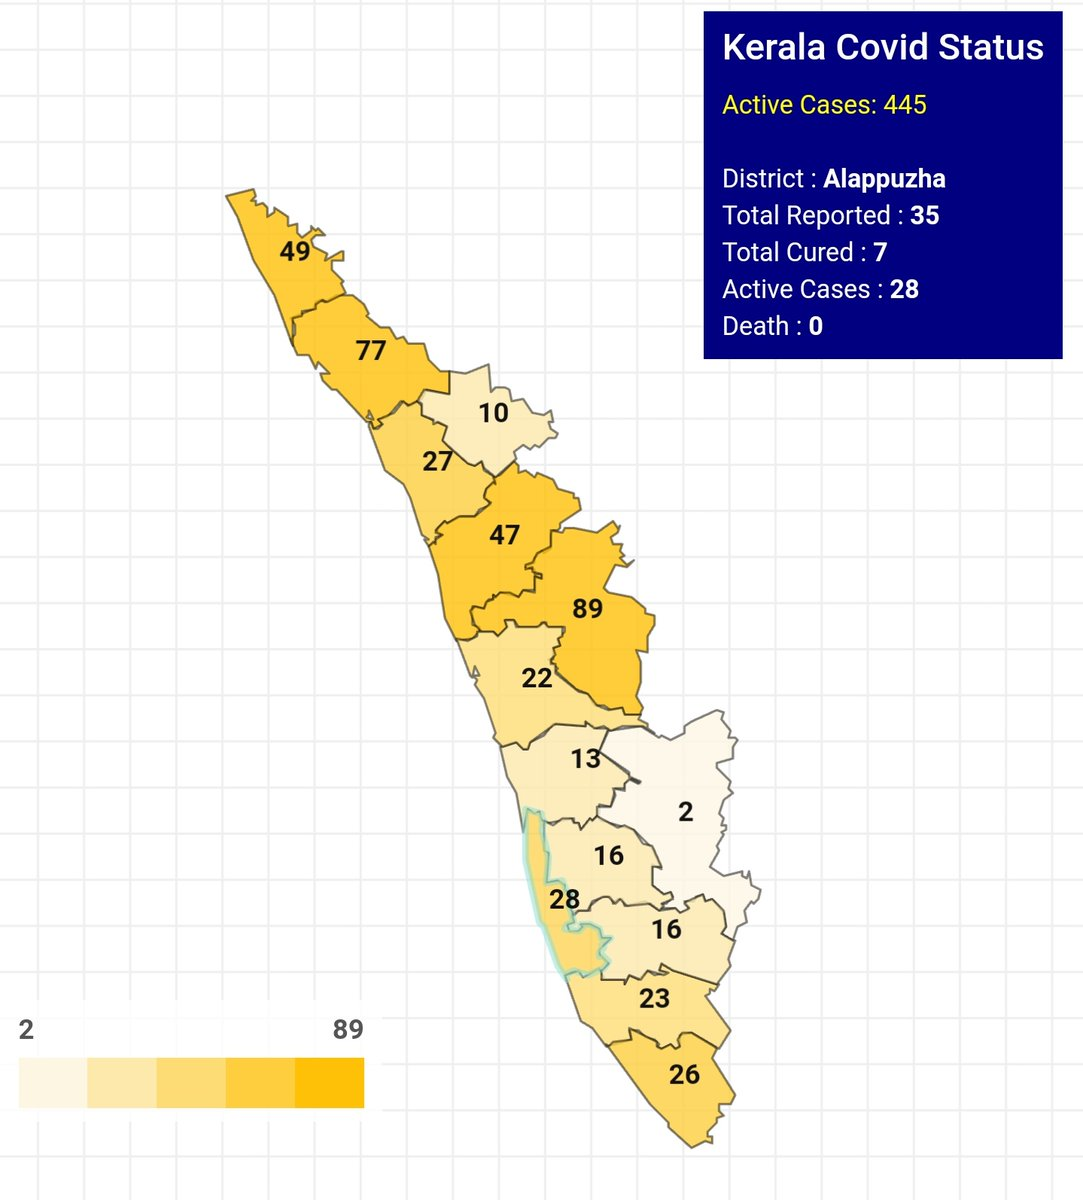 #covidindia Alappuzha 27-05-2020   28 active cases !!   Confirmed : 35(28) , 7  Acrive : 28  Under observation : 5144(5046), 98  Home isolation : 5116(5009), 107  Hospitalized with symptoms : 28(37), 9  New hospitalized cases today : 5(8), 3 pic.twitter.com/u6CwR125F6